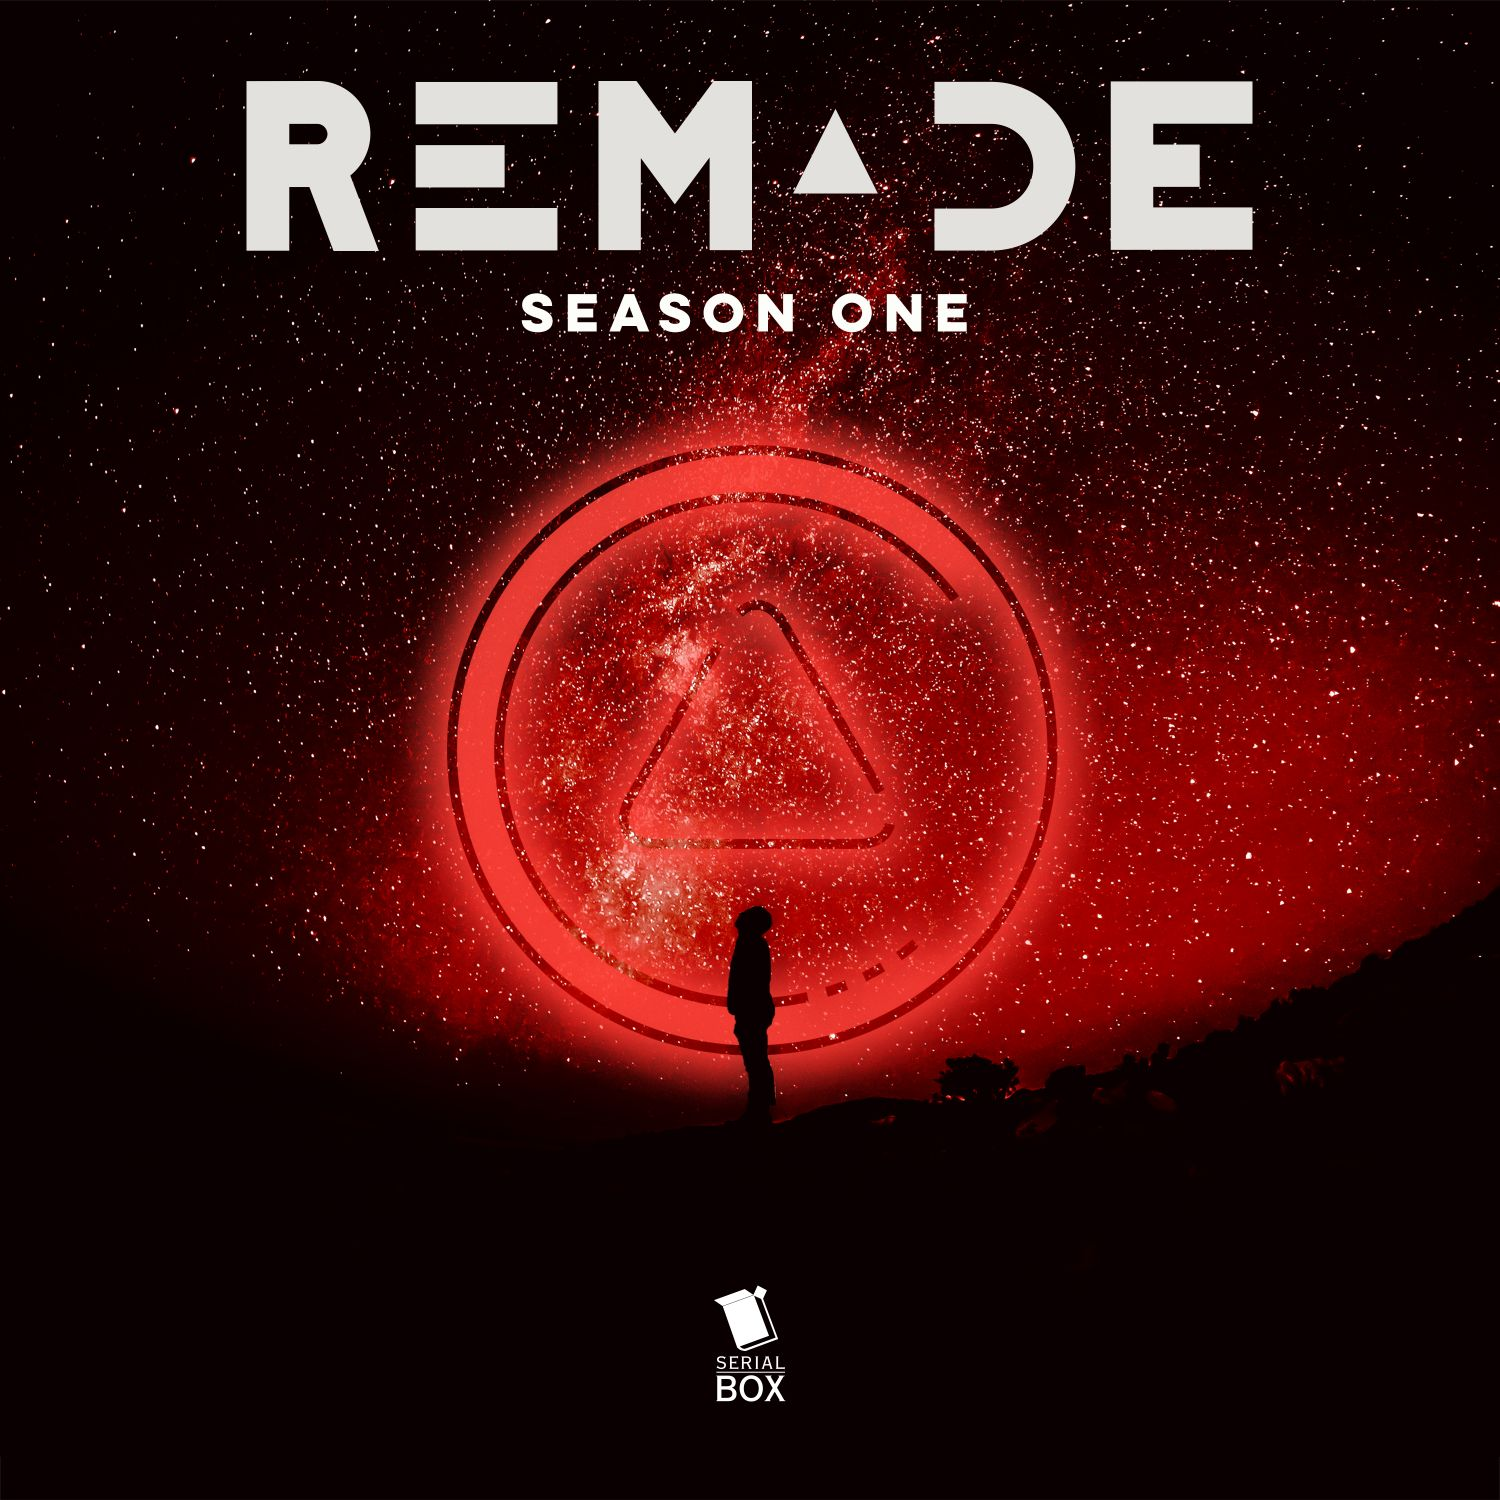 Serial Box presents the Remade podcast